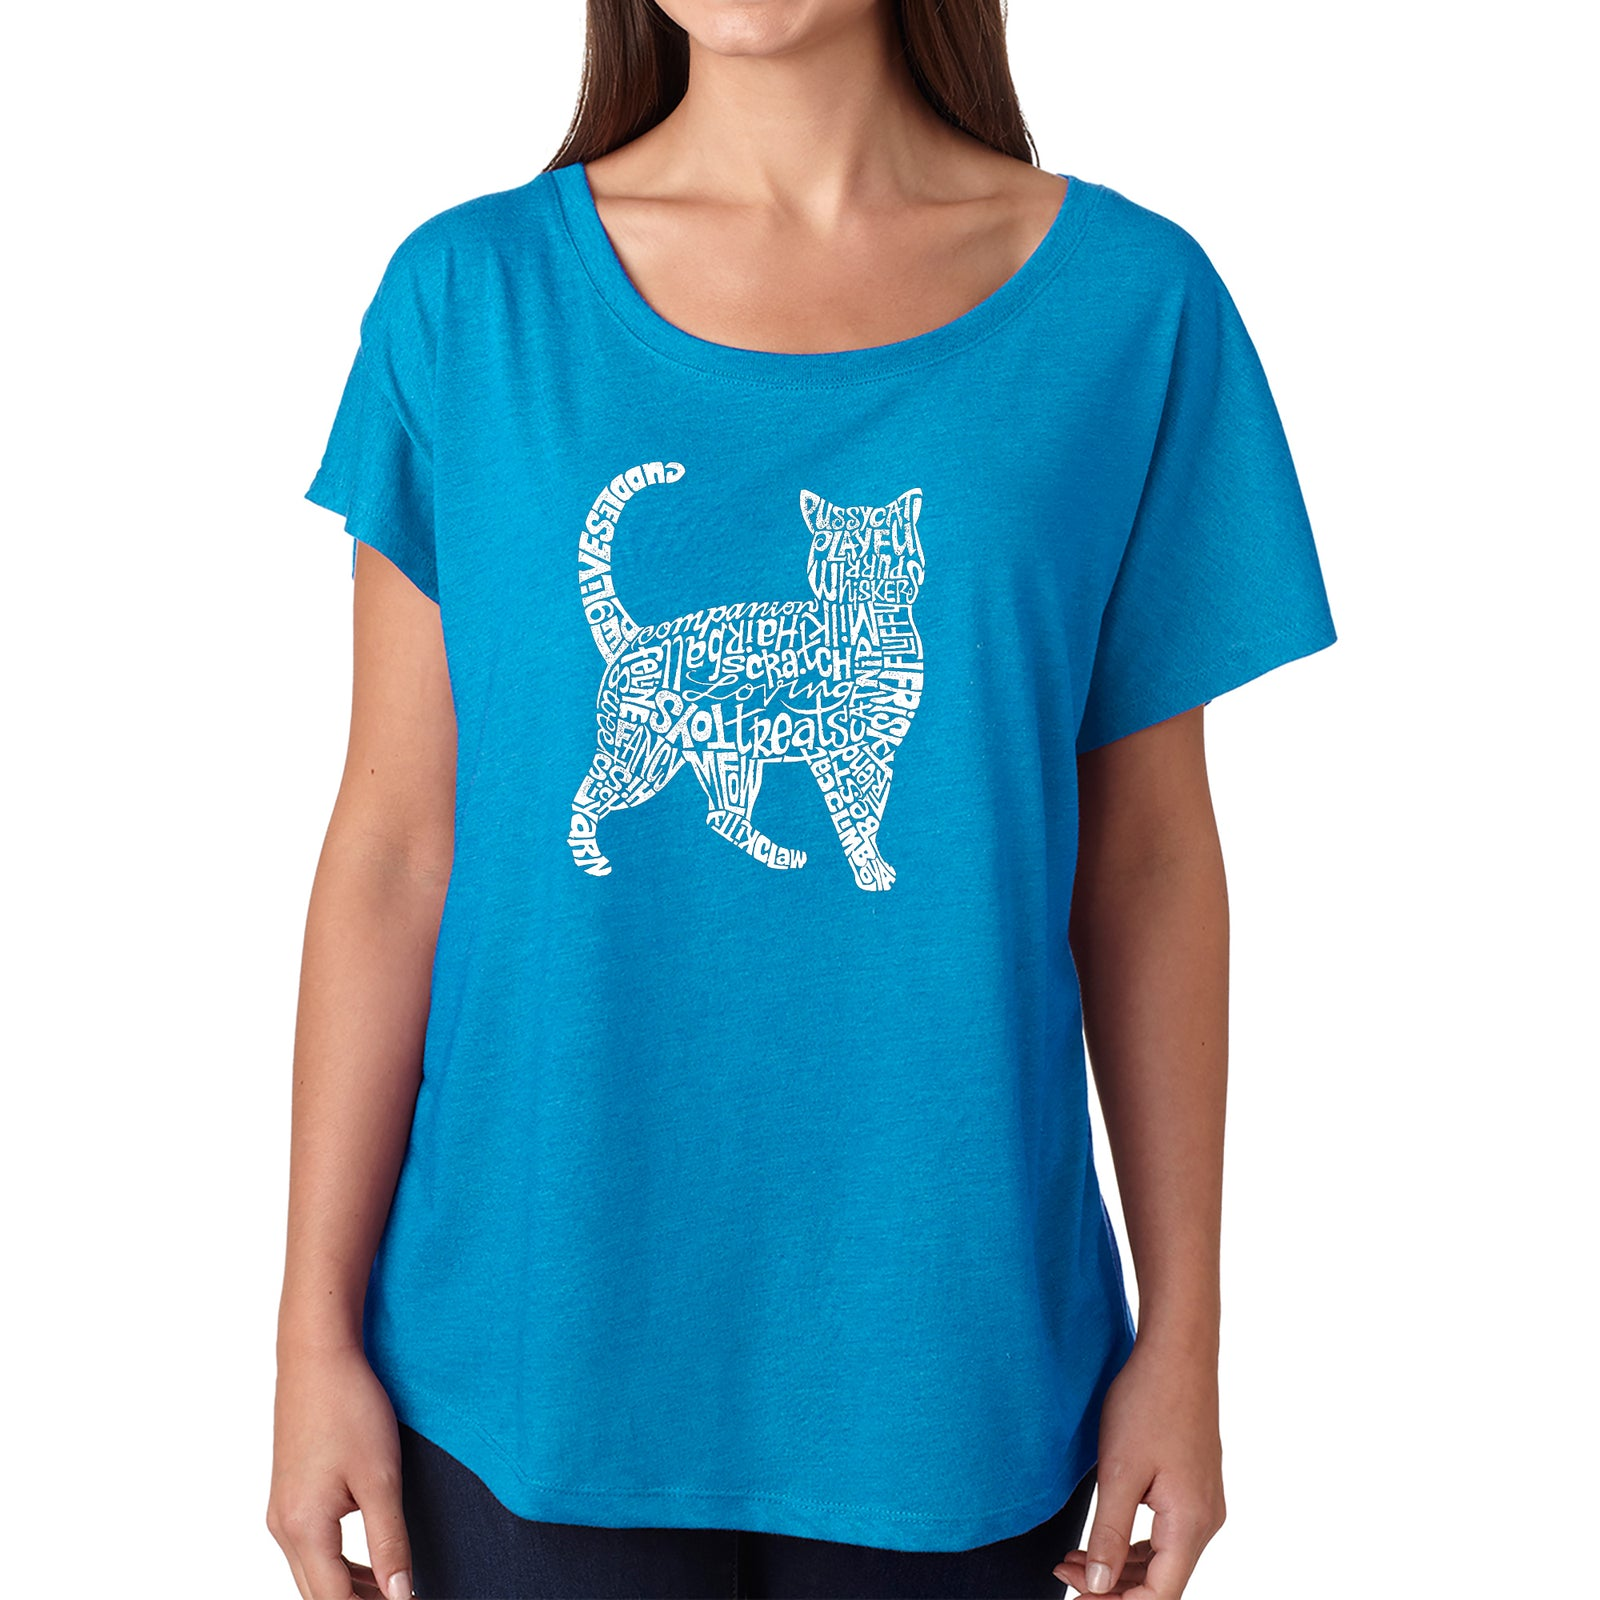 Women's Loose Fit Dolman Cut Word Art Shirt - Cat